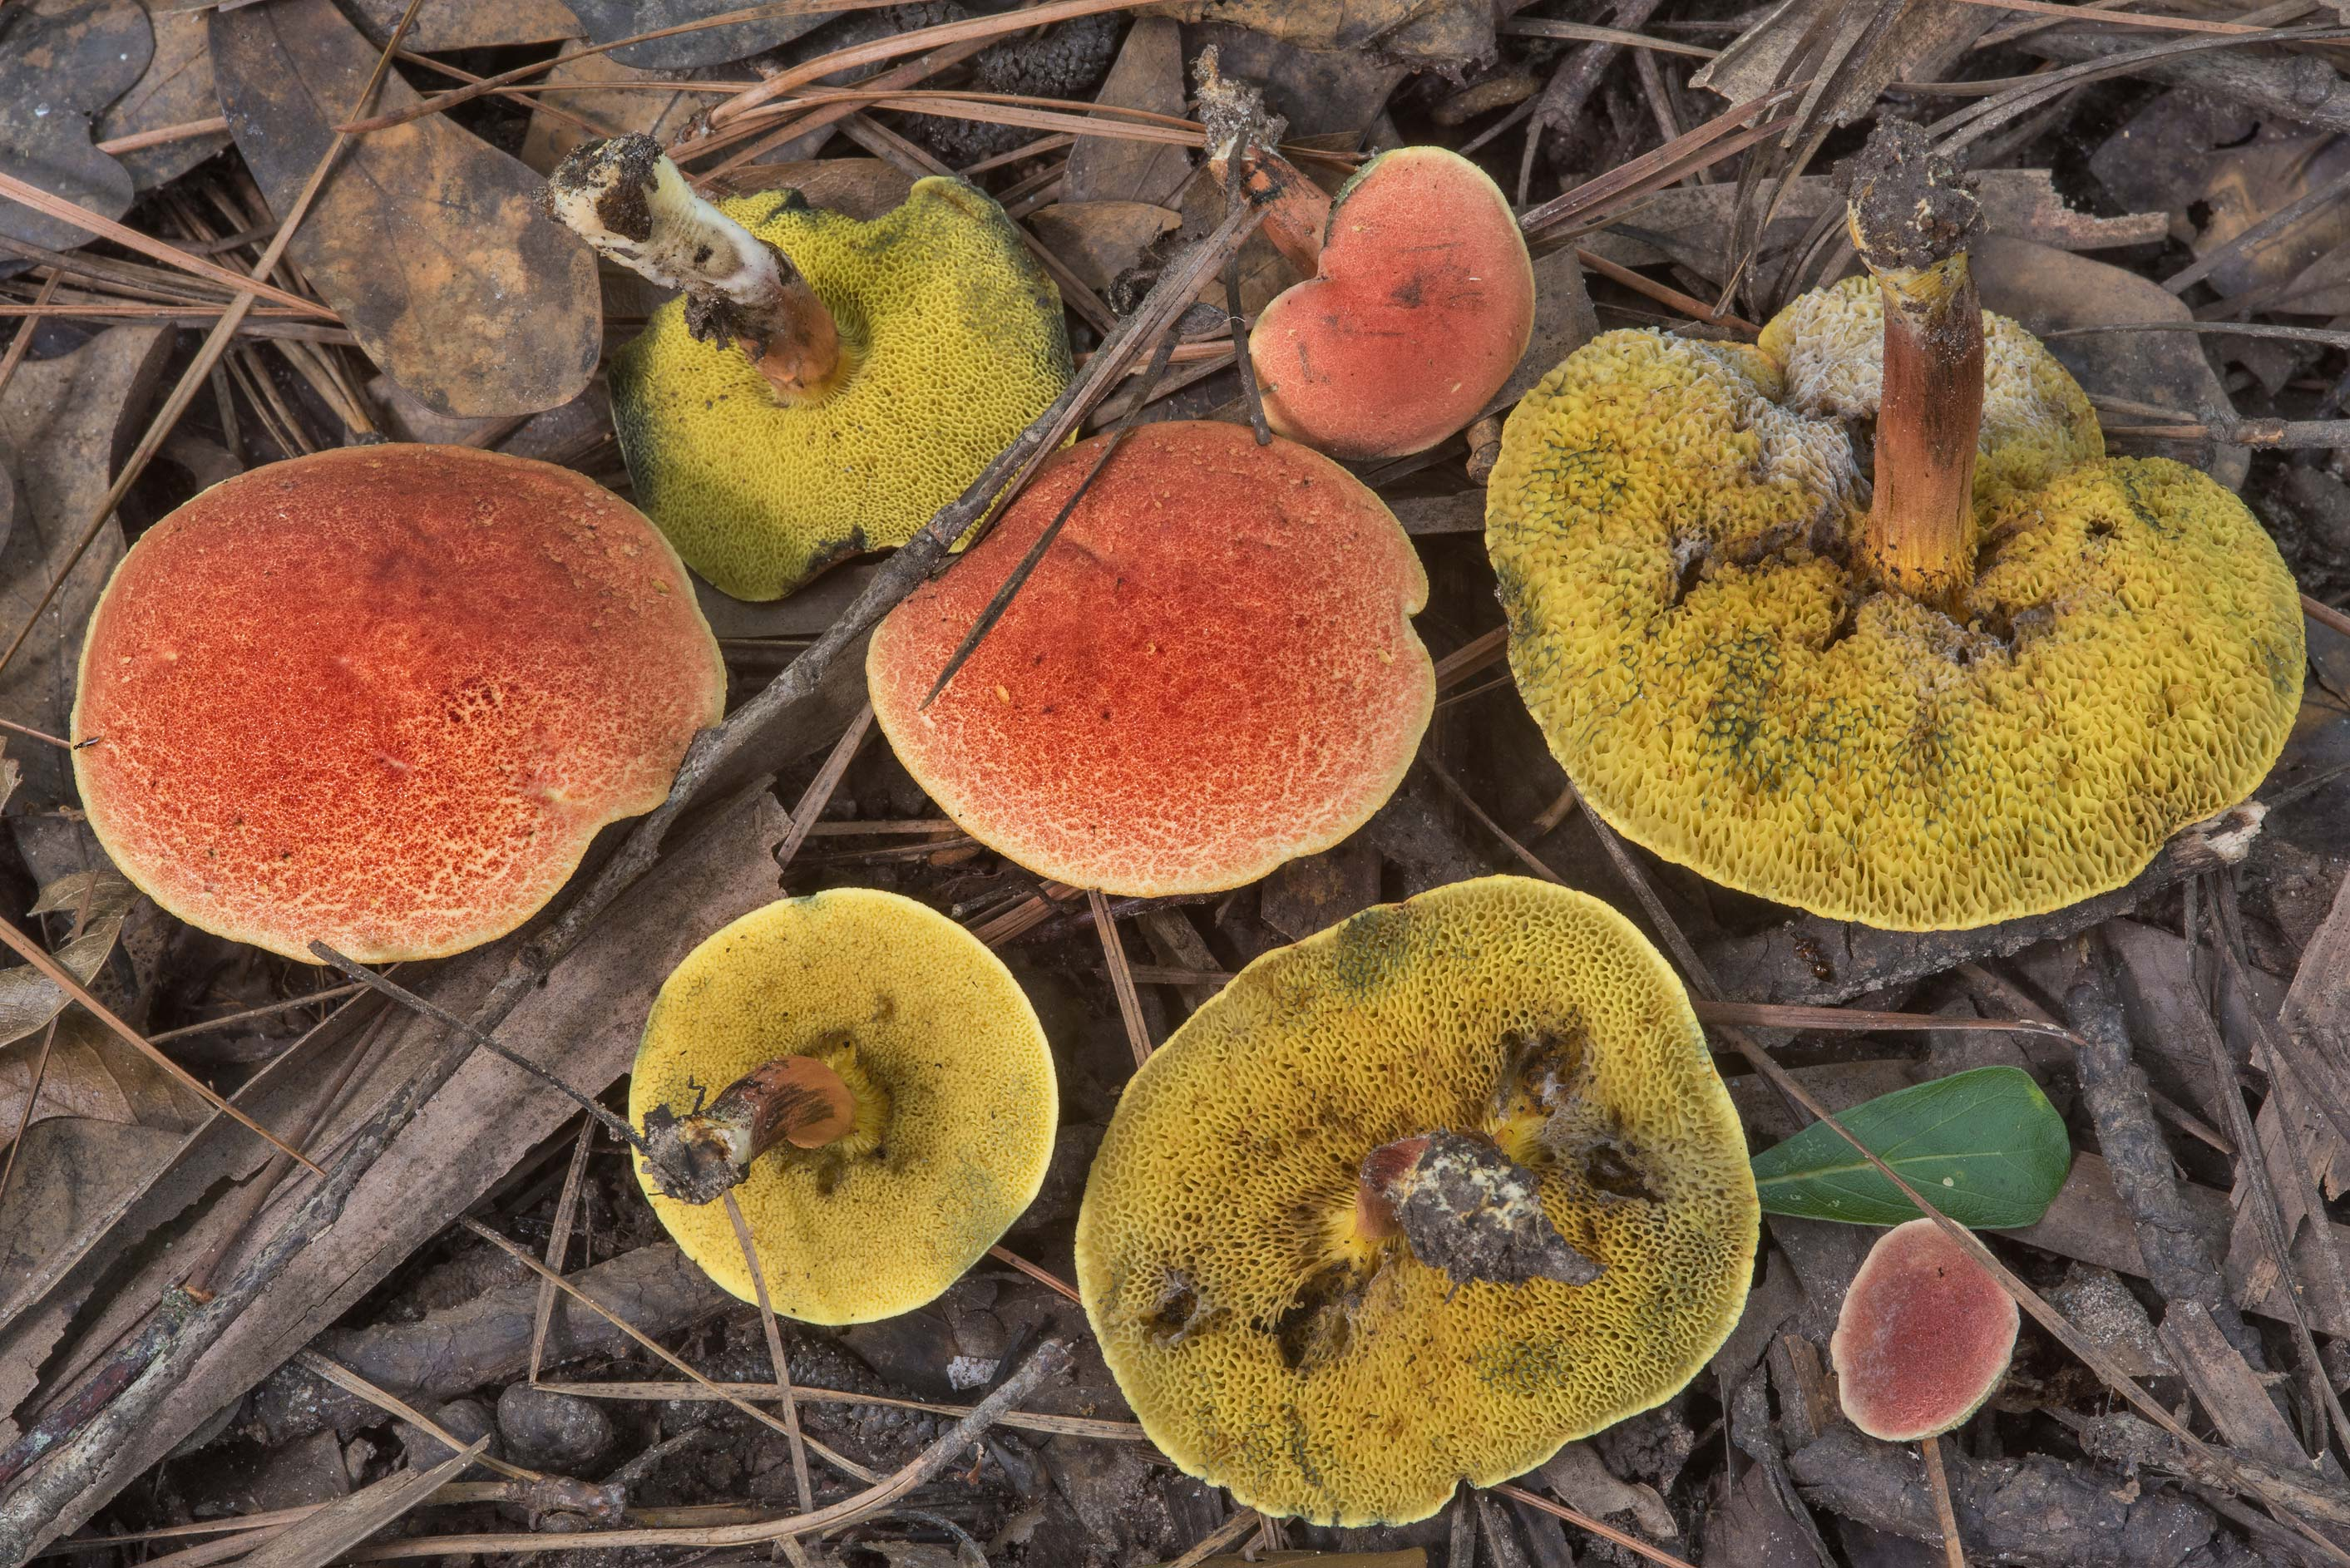 Group of ruby bolete mushrooms (Hortiboletus...Forest, near Huntsville. Texas